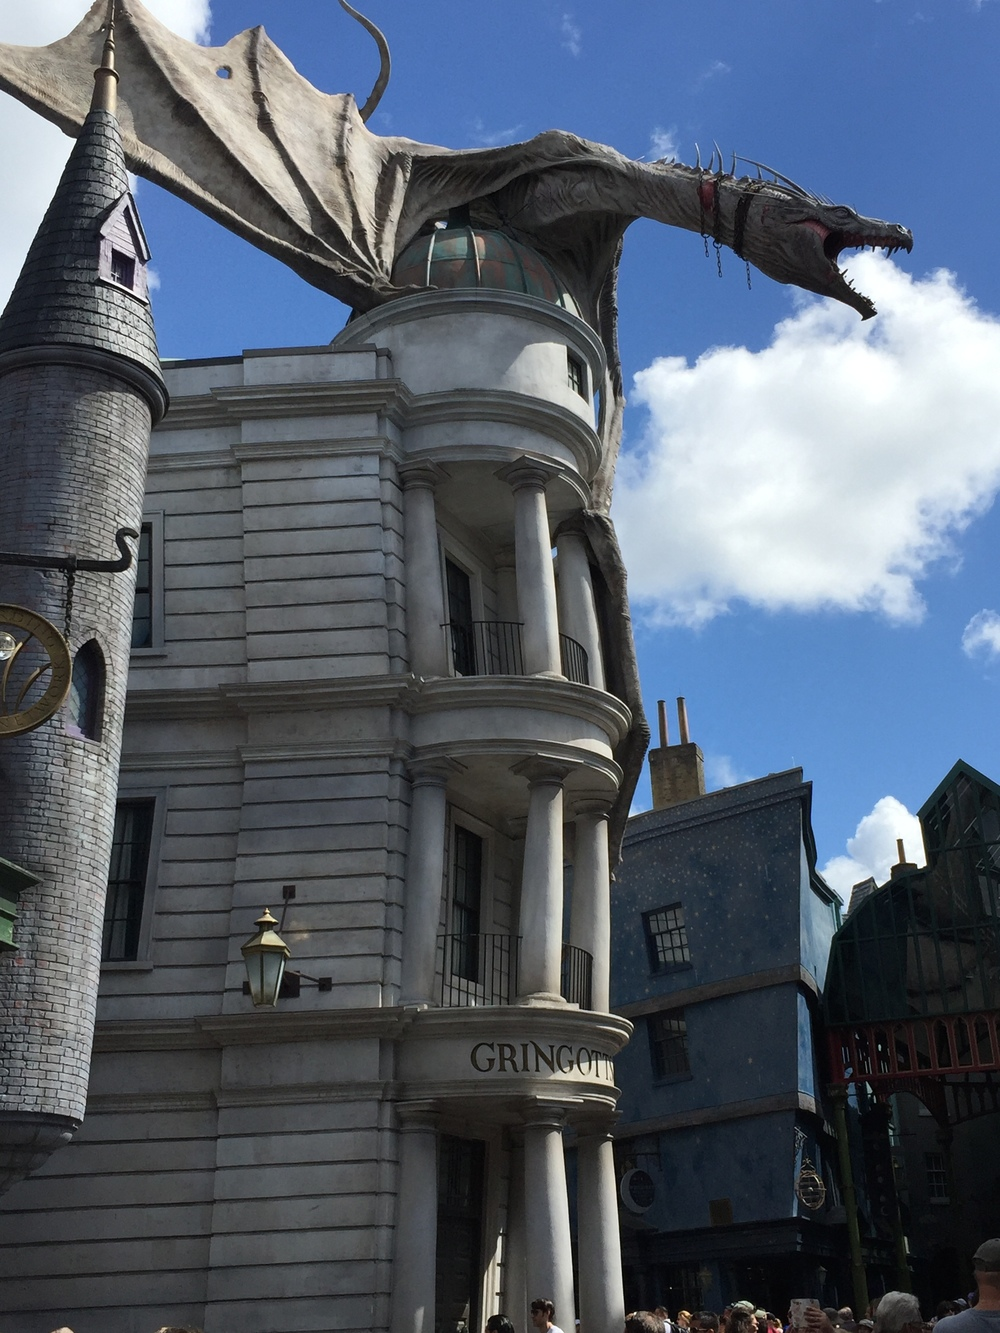 The dragon atop Gringott's in Diagon Alley.